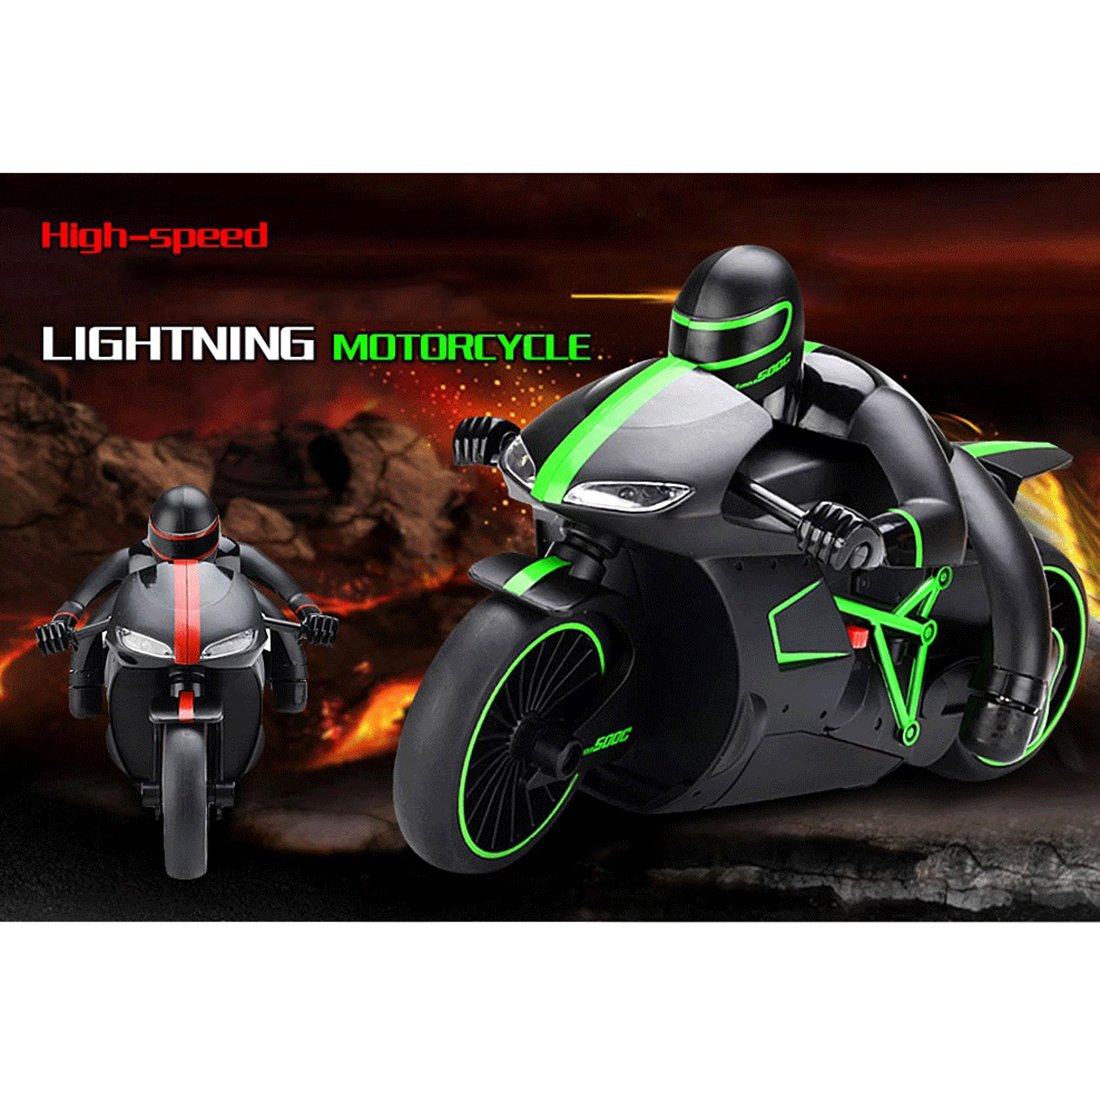 20KM H Speed 4 Channels Led Light Motorcycle RC Racing Drift Motorbike Two wheeled Motor Vehicle